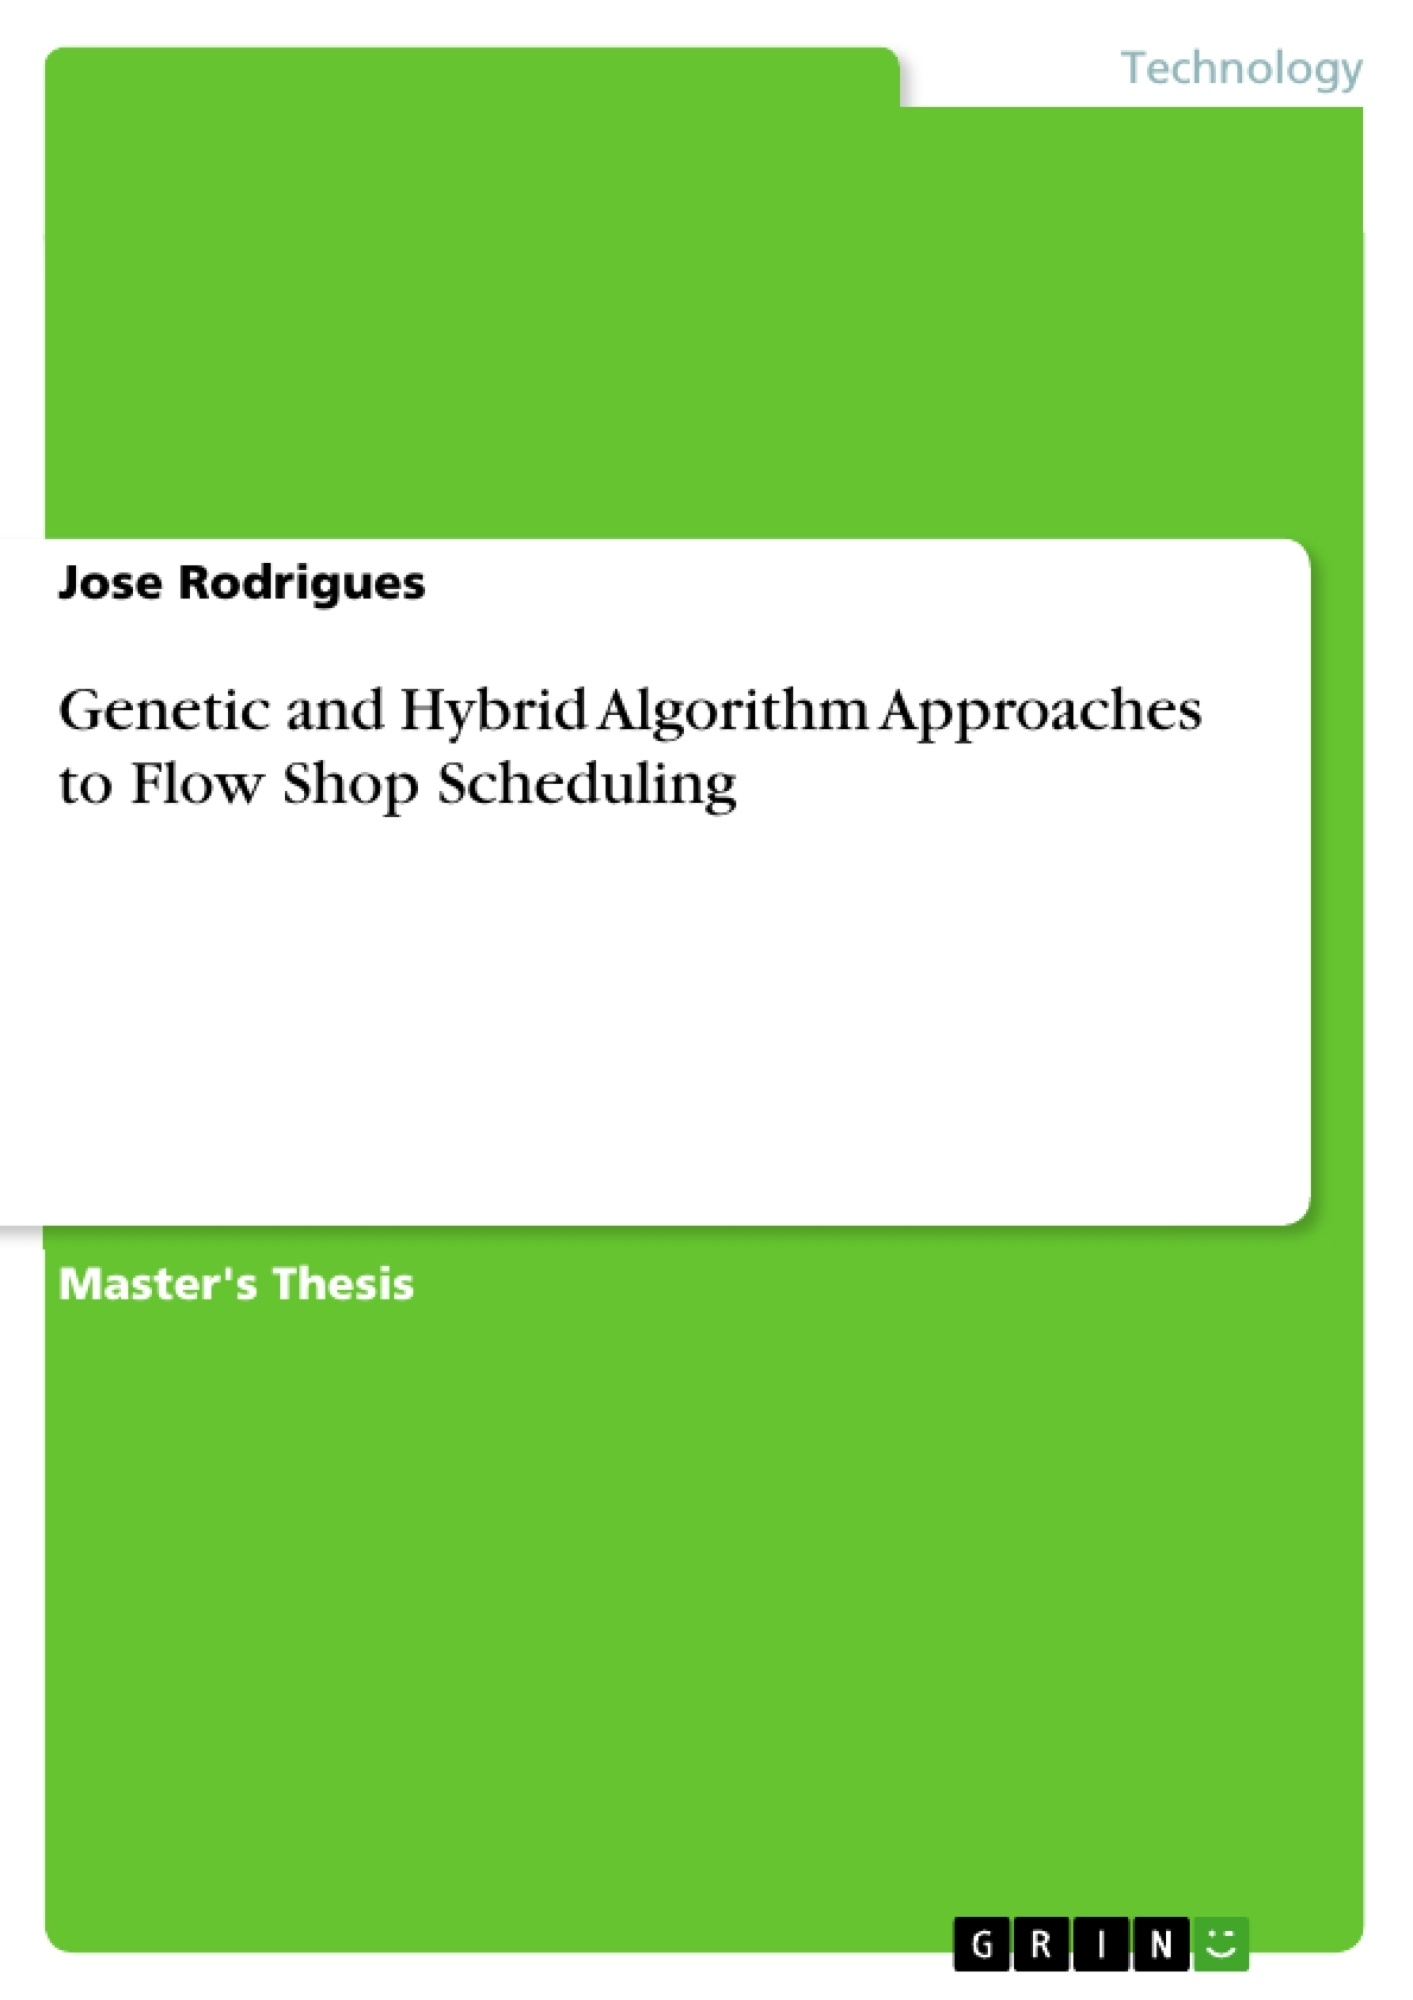 Title: Genetic and Hybrid Algorithm Approaches to Flow Shop Scheduling